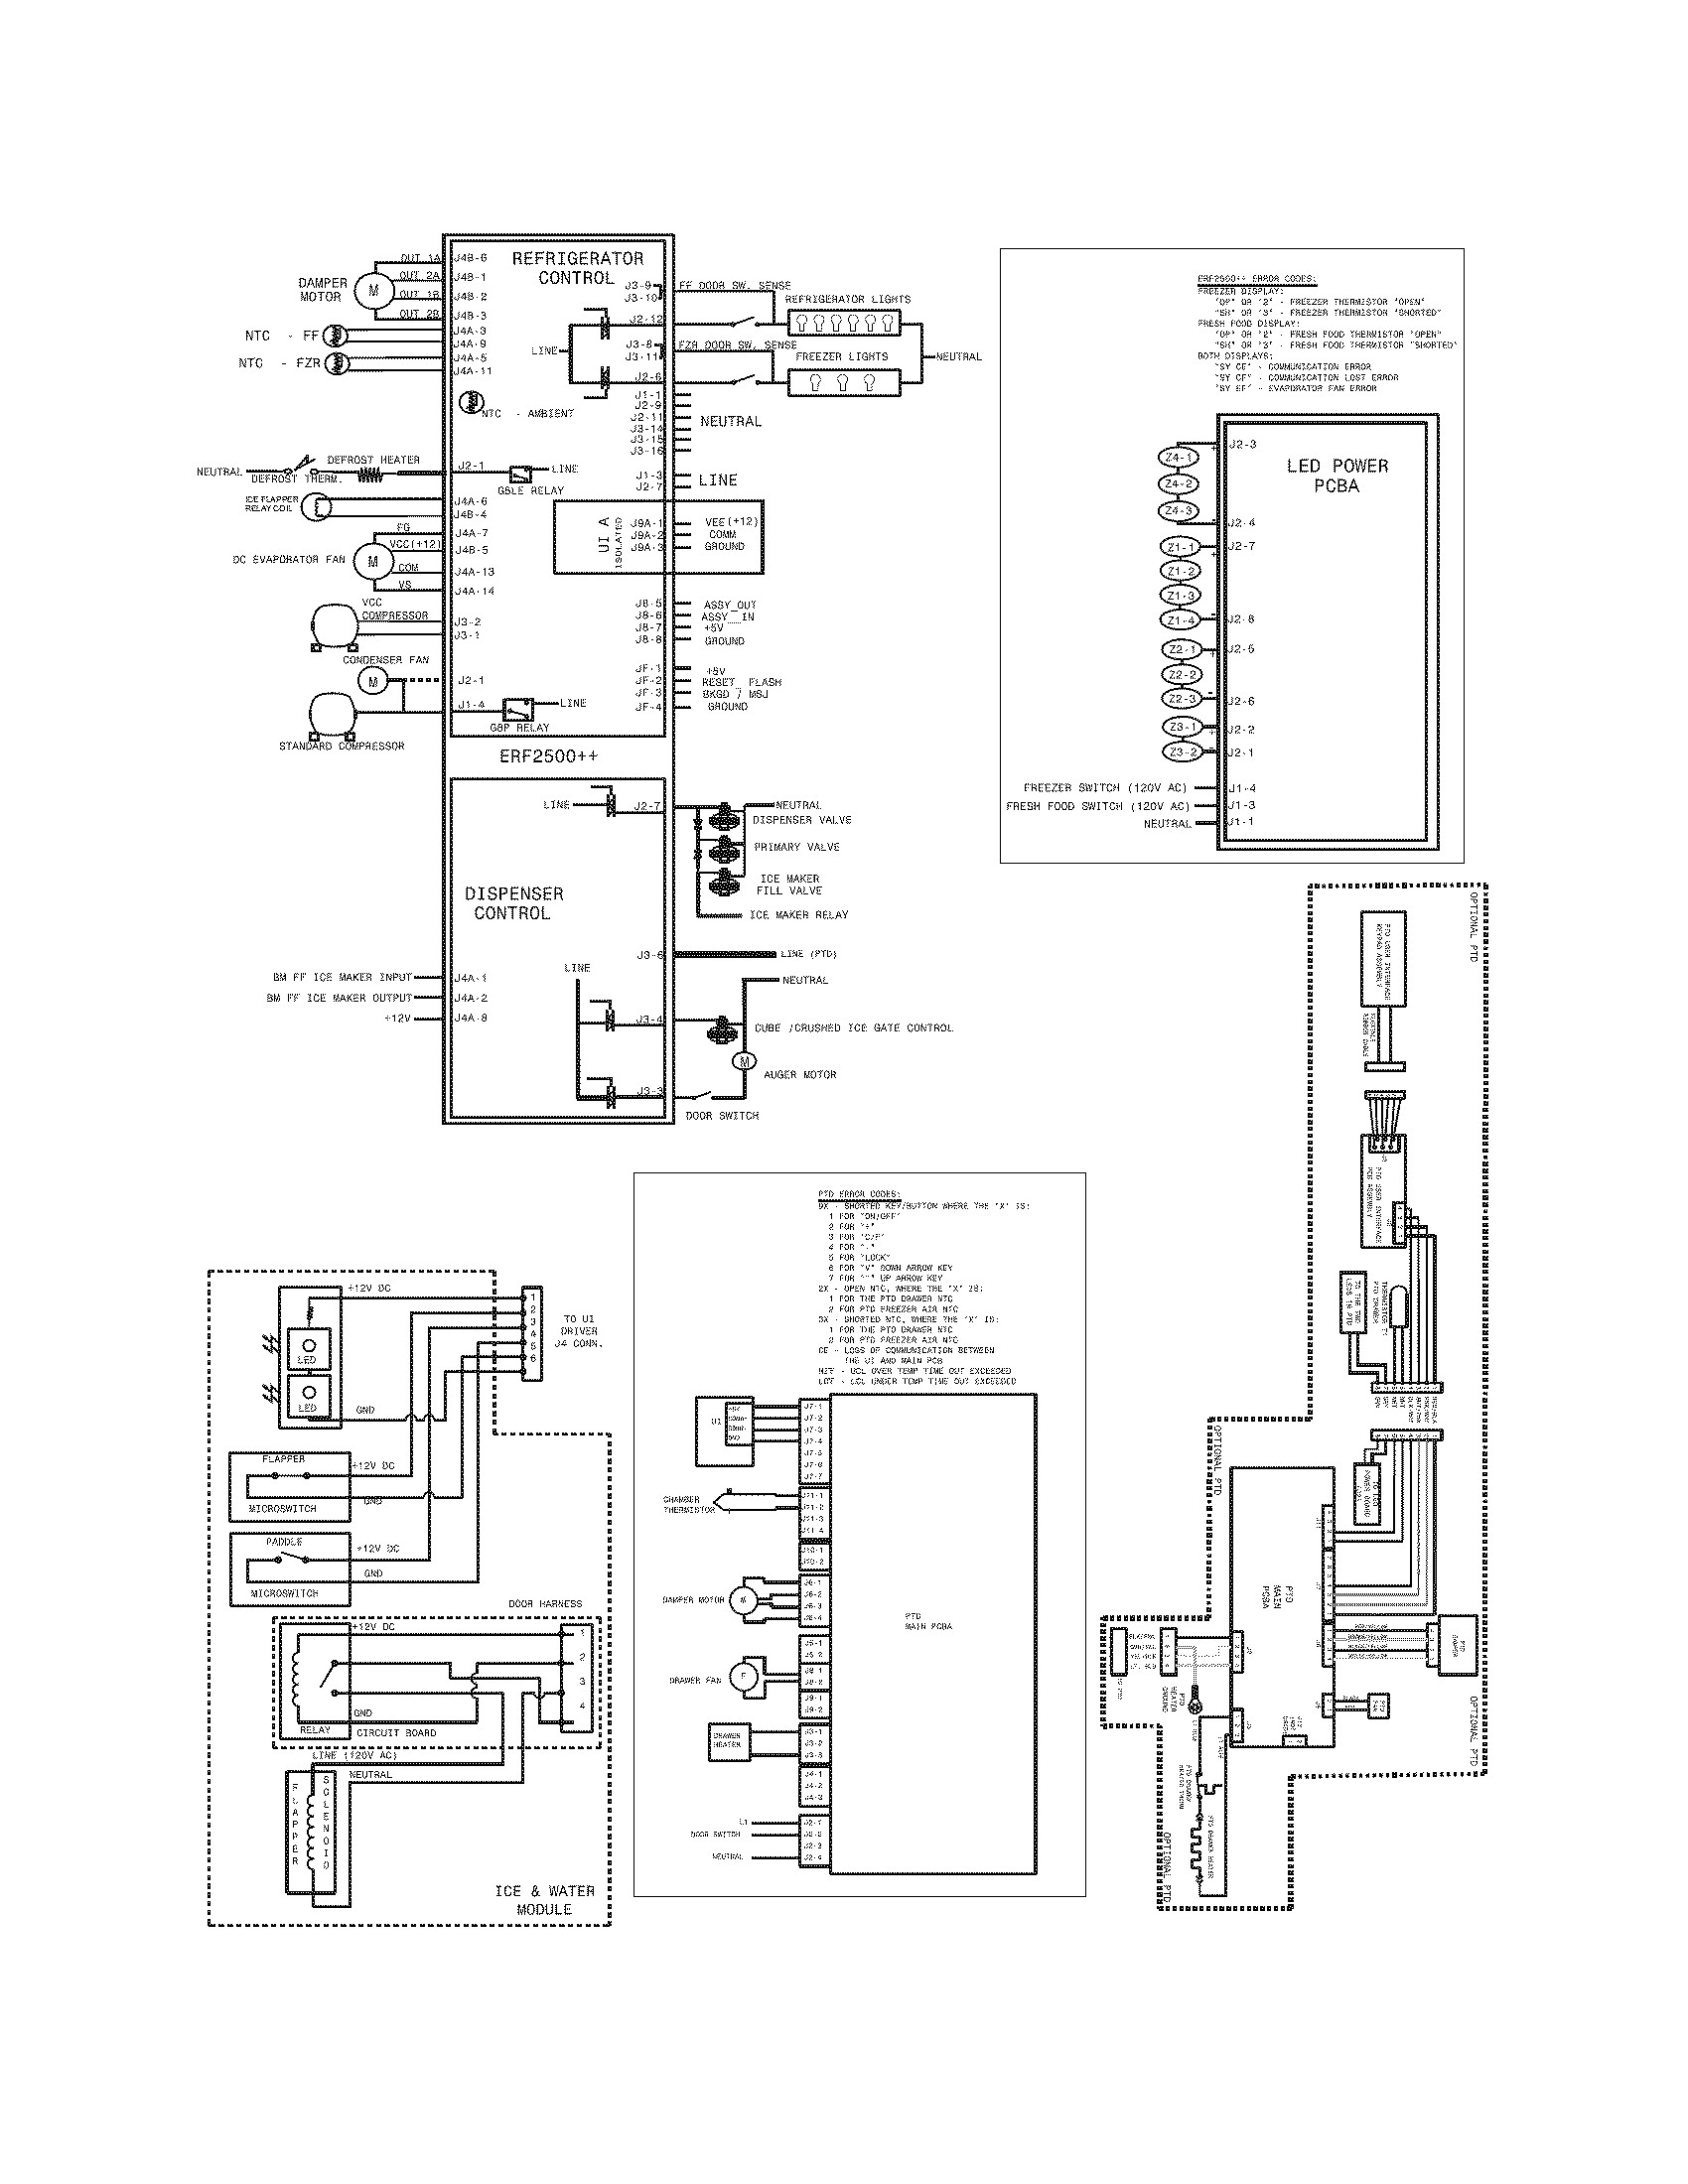 Jd 345 Wiring Diagram John Deere Lx176 Wiring Diagram Diagram Base Website Wiring Of Jd 345 Wiring Diagram